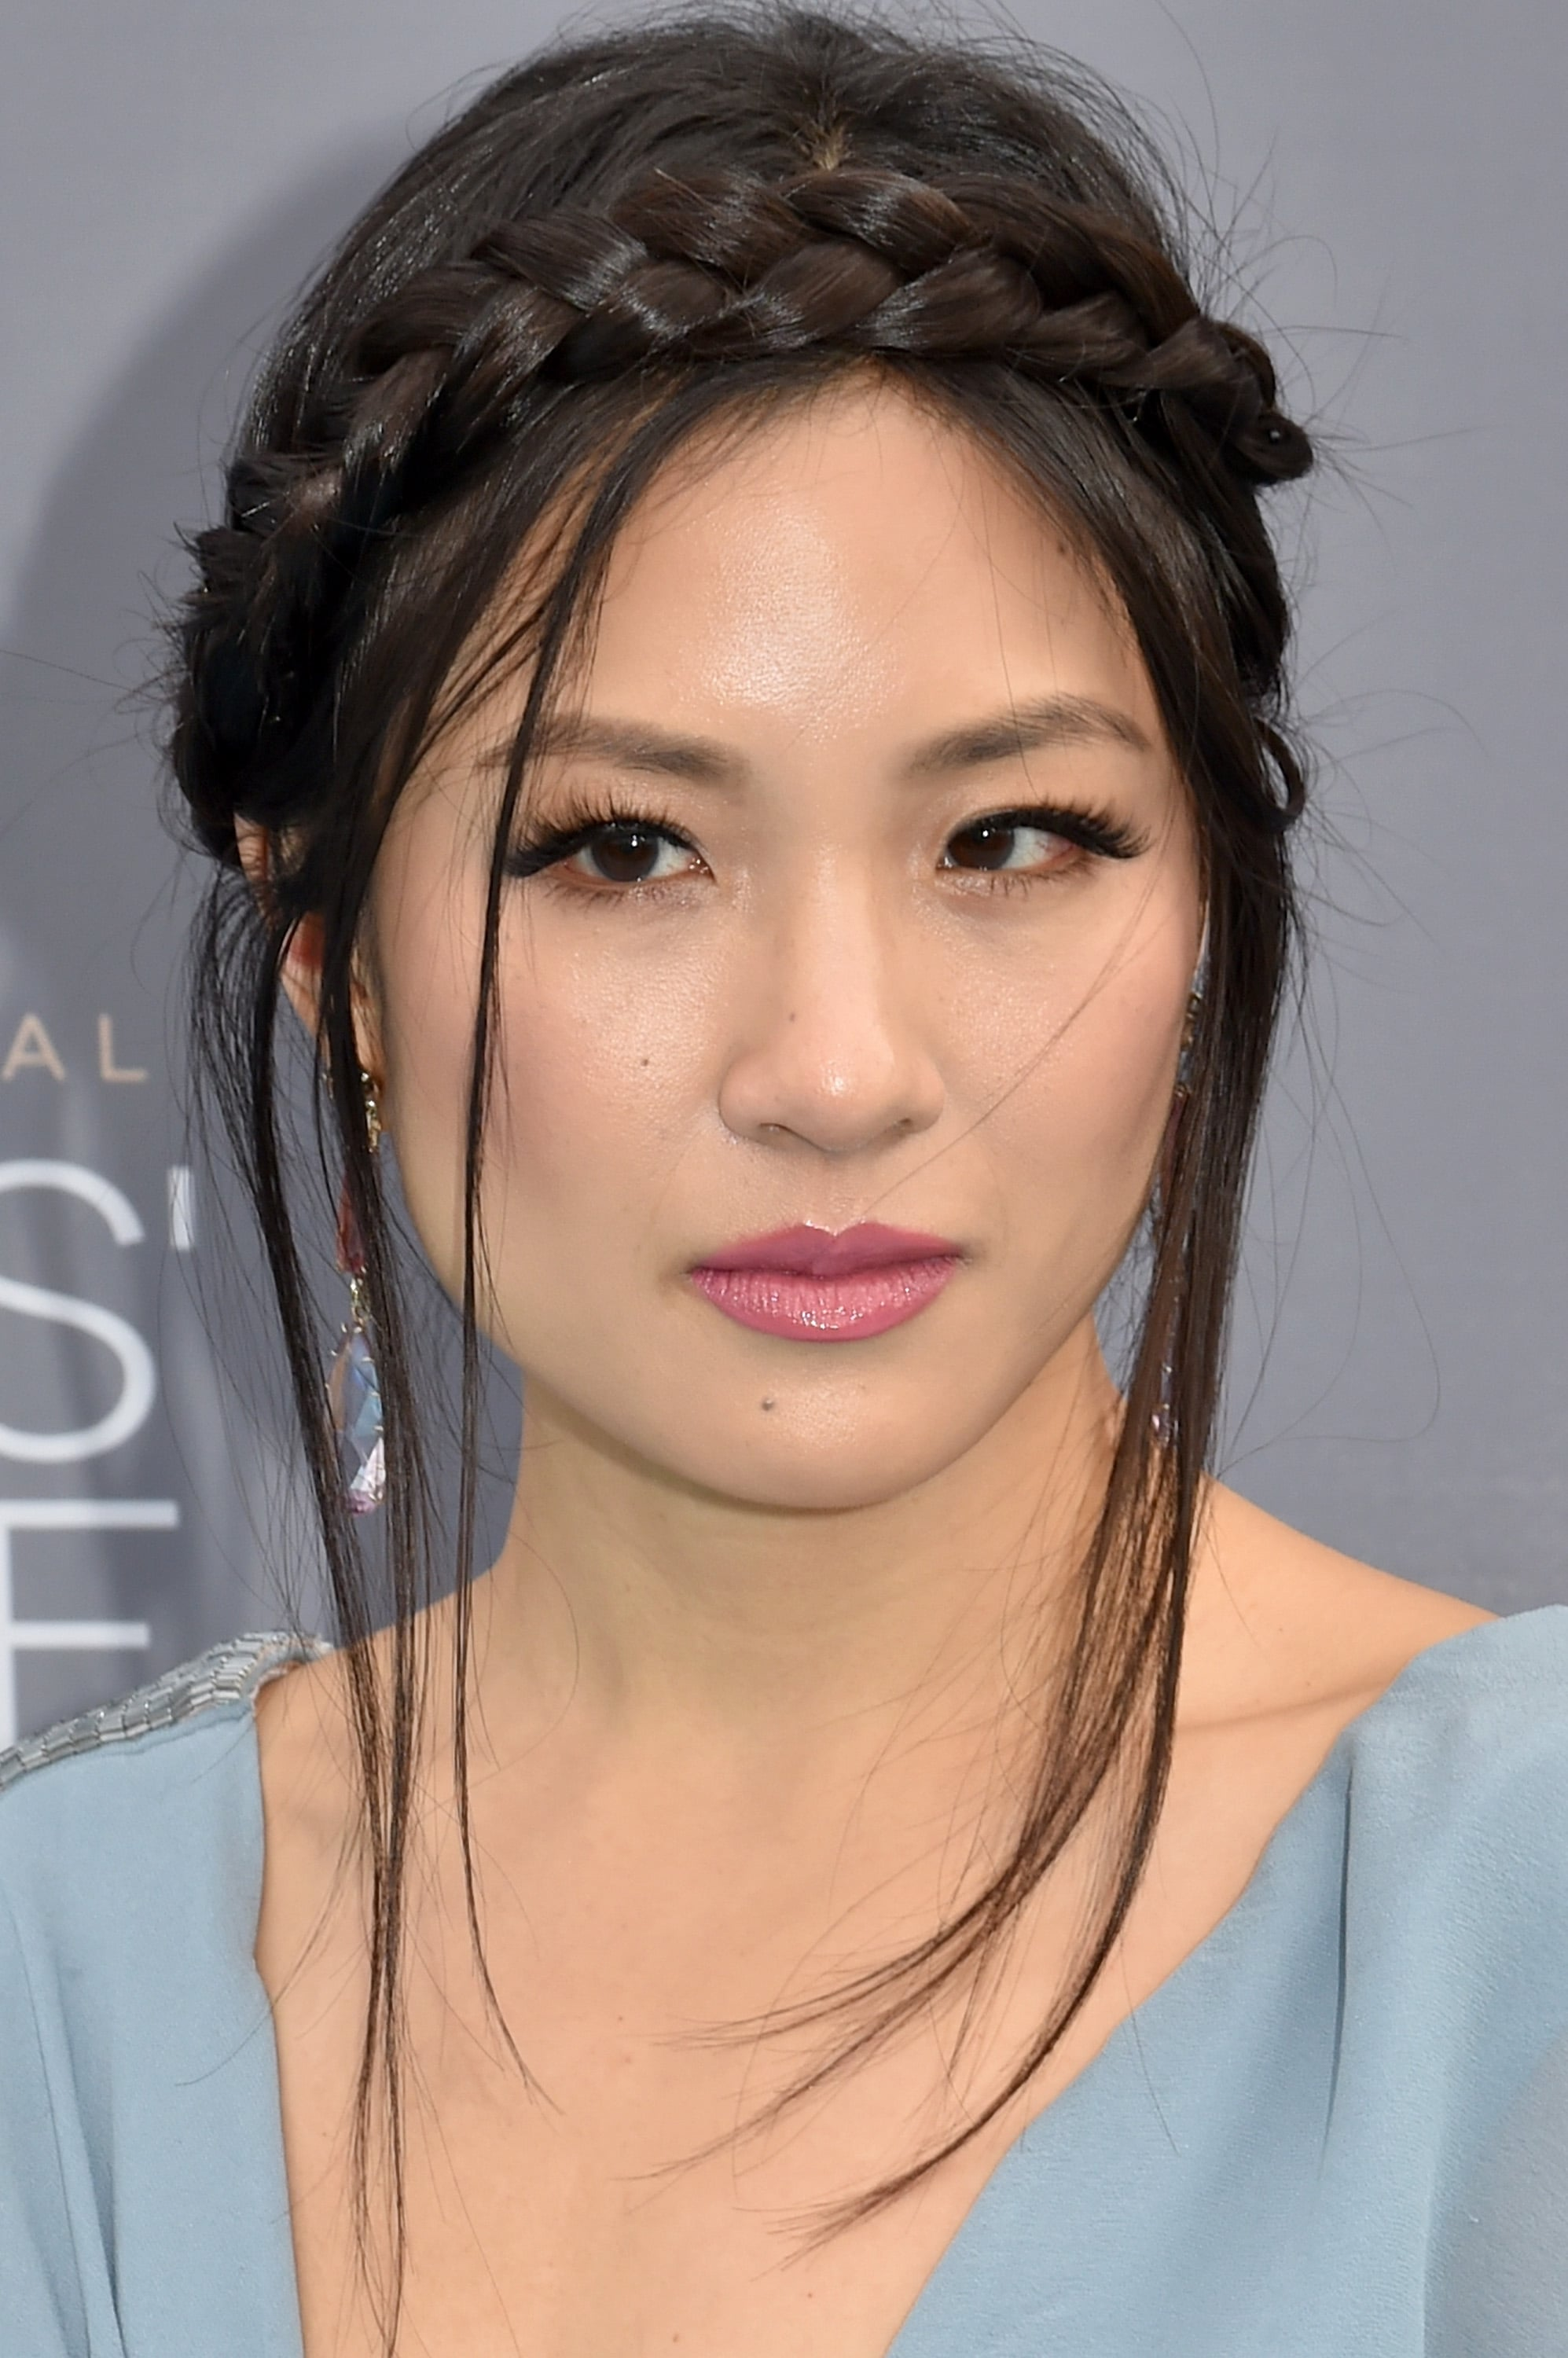 Constance Wu Stop And Stare At The Most Beautiful Looks